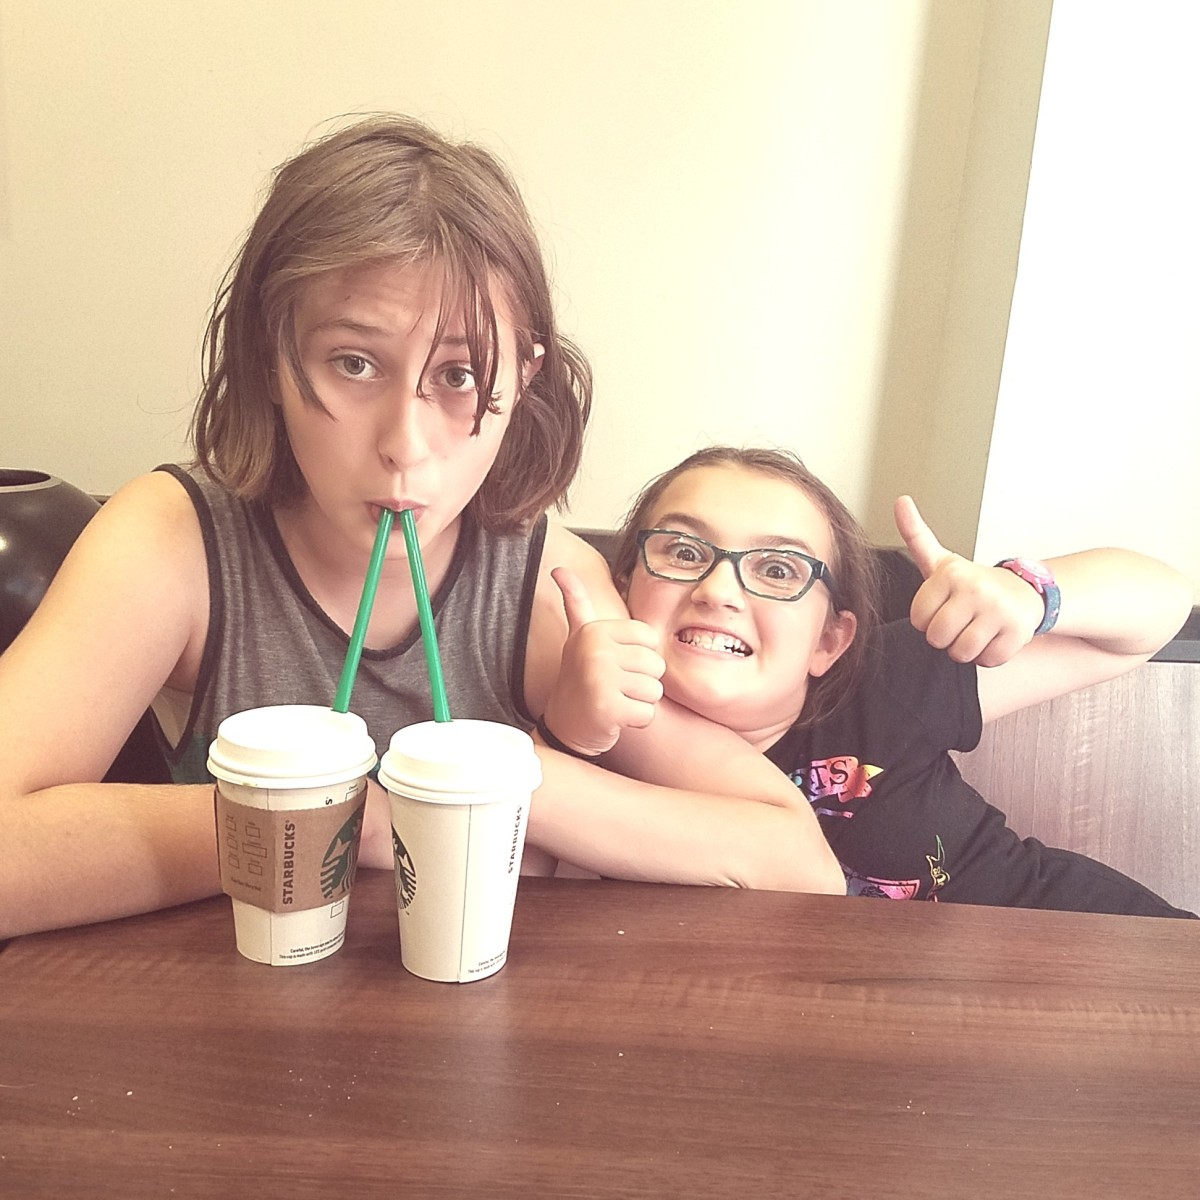 My daughter and a friend cavorting at Starbucks